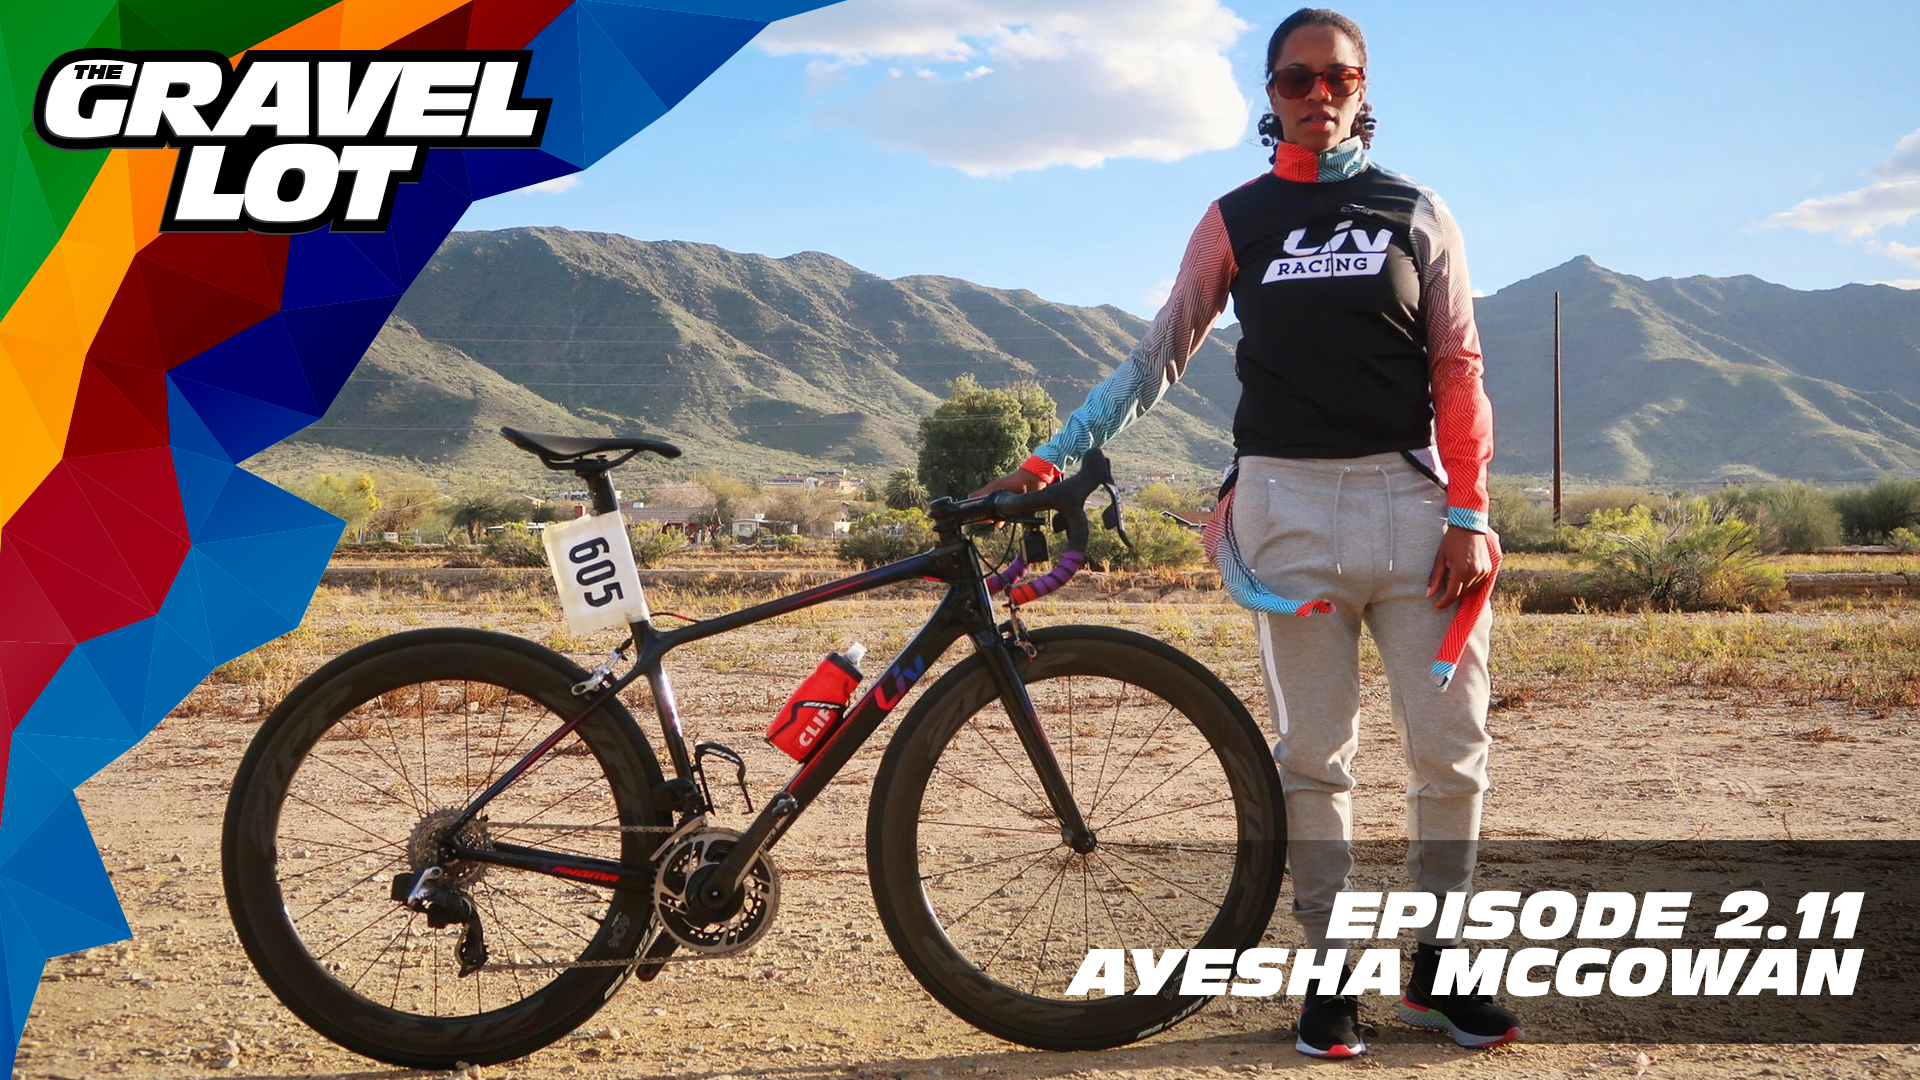 """Episode 63: Ayesha McGowan joins us this week to talk about the difference between equity and equality, and how she is trying to build upon her lifetime of experiences to become the first female African-American pro road cyclist while inspiring an entire generation of young women.   Visit The Gravel Lot website for our latest podcast, Real Talk videos, Bonus Content, shop, social media, and everything in between.    Save 50% on your next RoadID:    Handup Gloves: Use code """"PEBBLES"""" for 20% off EVERYTHING in store.    Be Free Ride Bikes:    Noxgear: Use code """"PEBBLES"""" for 35% off any item.    Magas Law Firm:   Subscribe to The Gravel Lot on the  Wide Angle Podium Network and become a member TODAY!"""